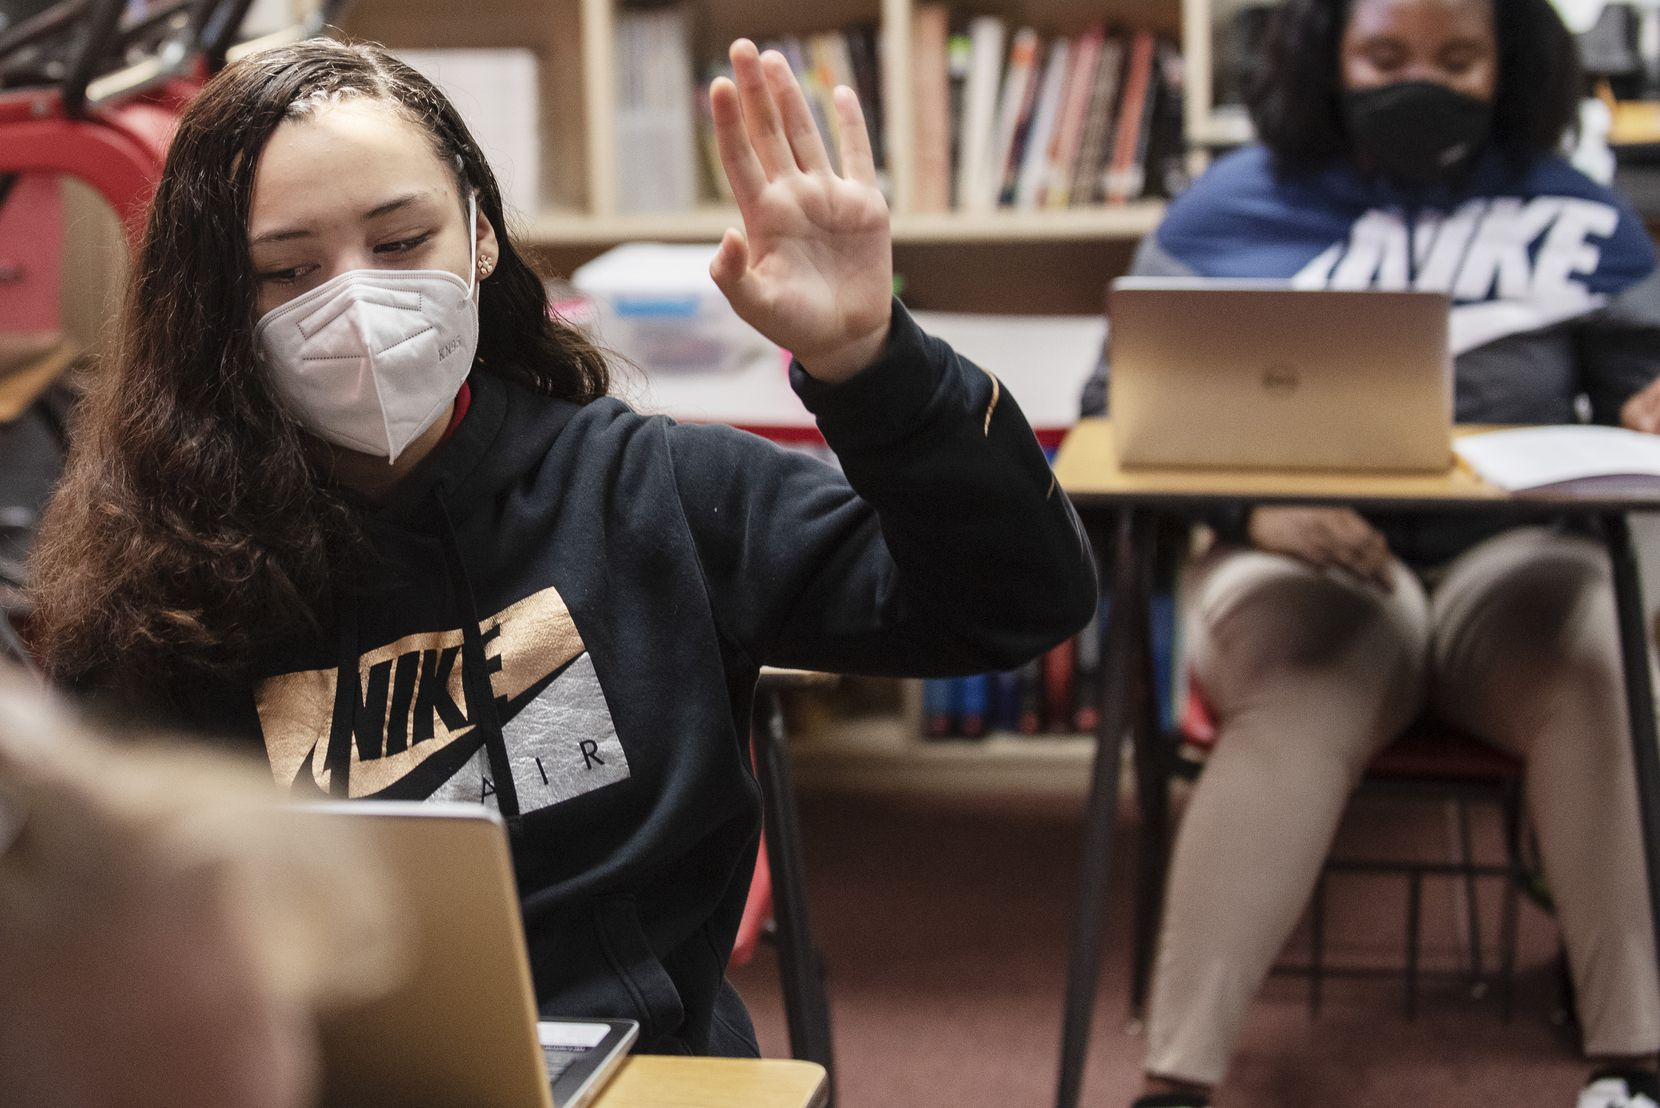 Eighth grader Yarettzi Chavez raised her hand to answer a question as her social studies class discussed the election Wednesday at Permenter Middle School in Cedar Hill.